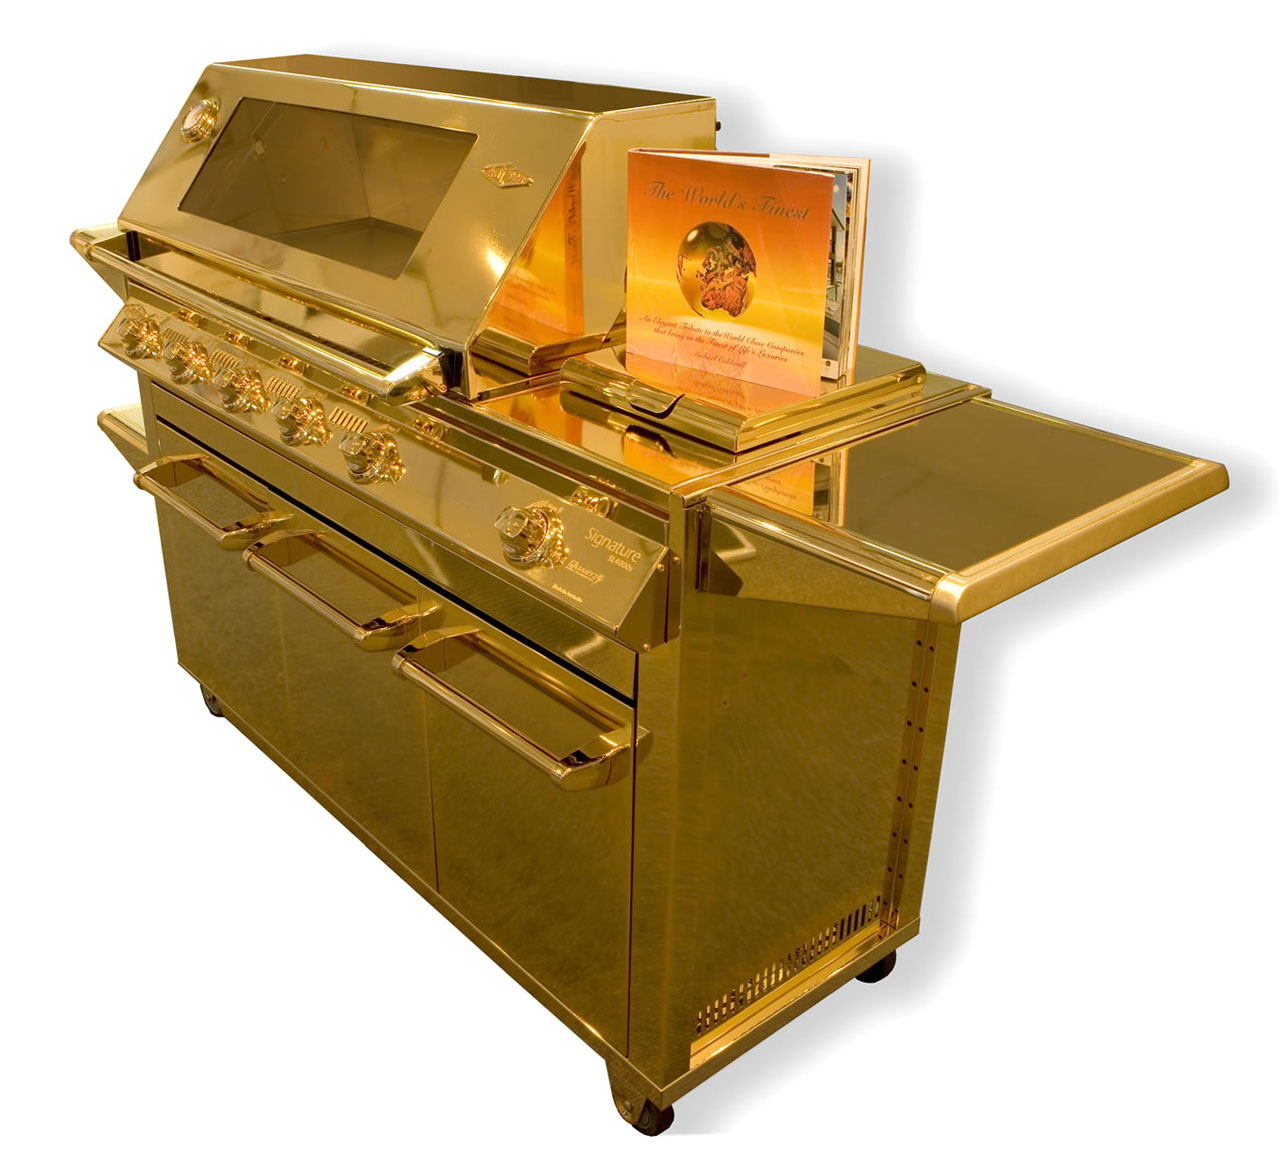 24-Carat Gold Barbecue Cooking in Luxury (1)